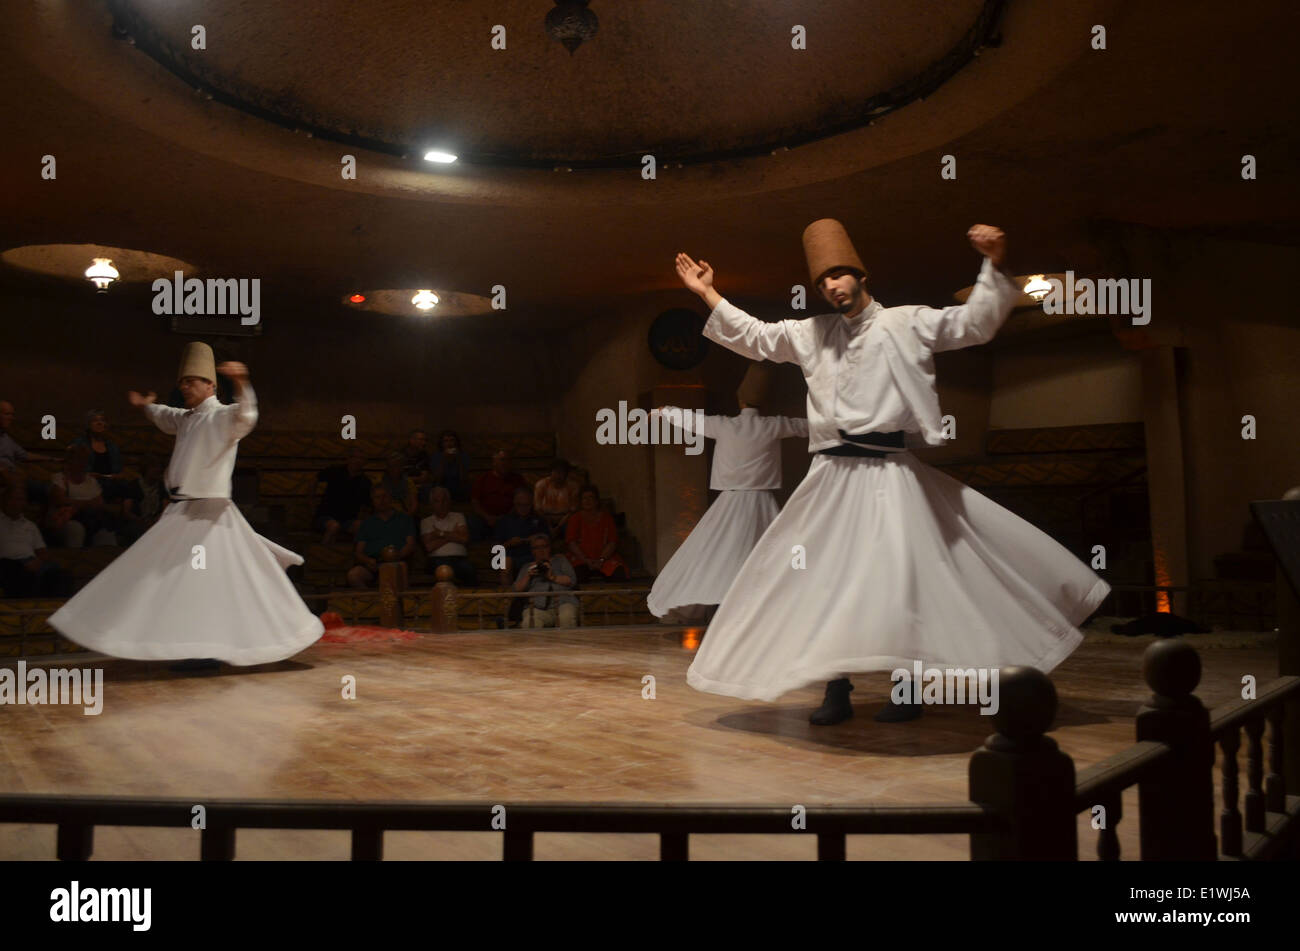 The whirling dervishes dance the'Sema'a journey through mindto reachperfection and a greater sense ofperfection - Stock Image